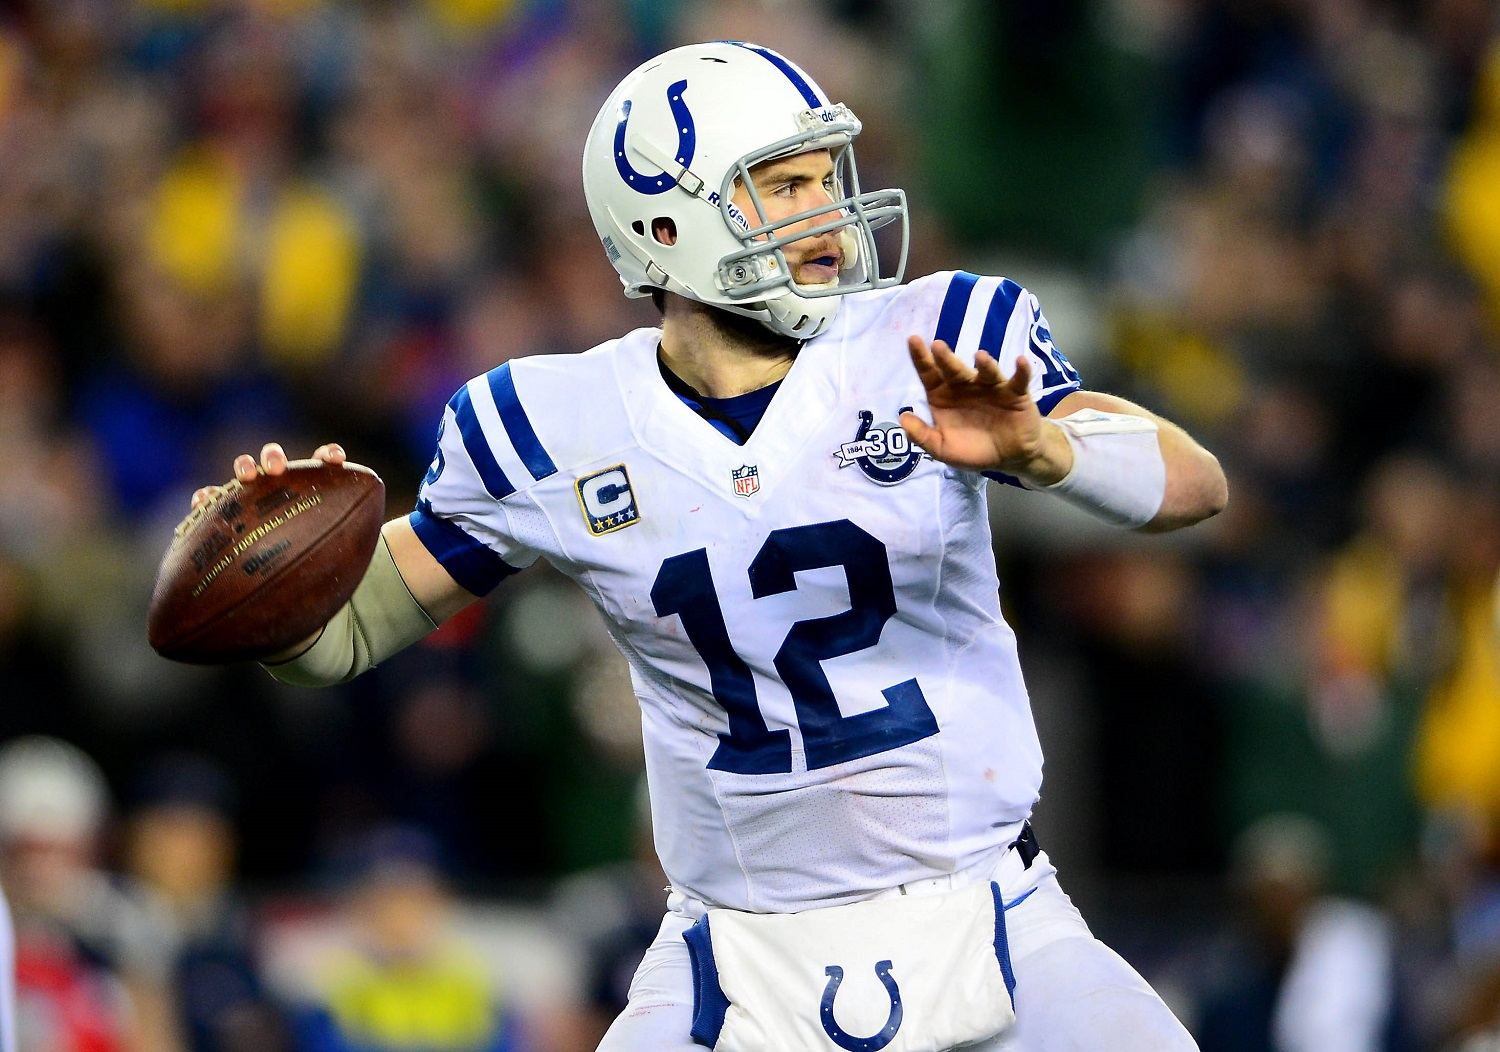 AFC South preview: Colts the favorite in weak division